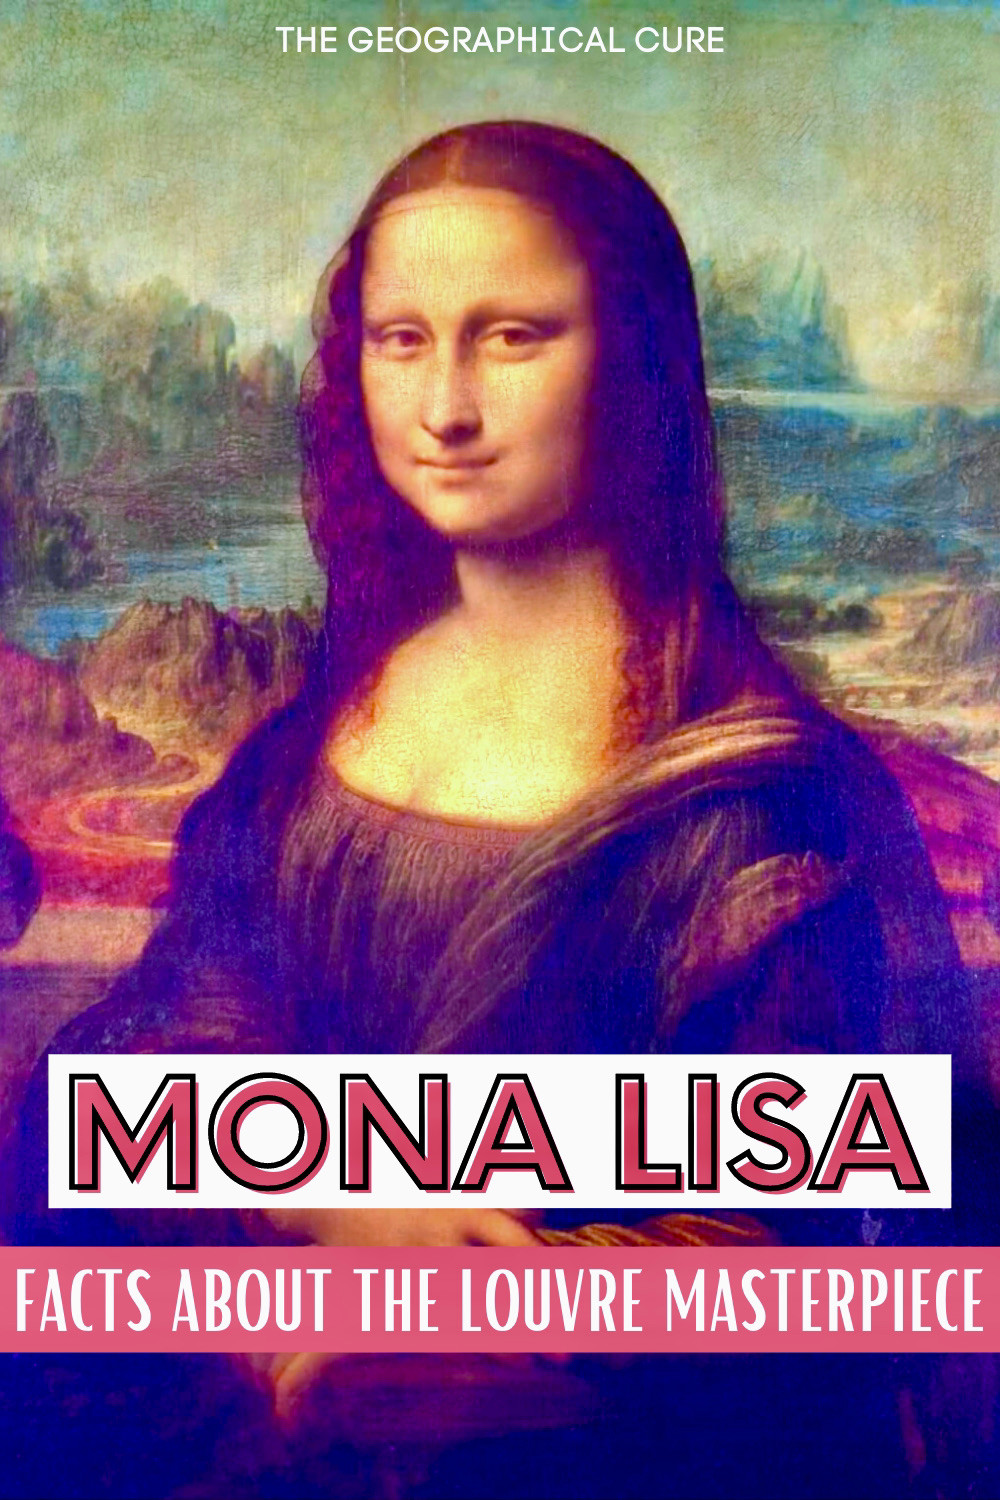 guide to Leonardo da Vinci's Mona Lisa, a must see painting in the Louvre